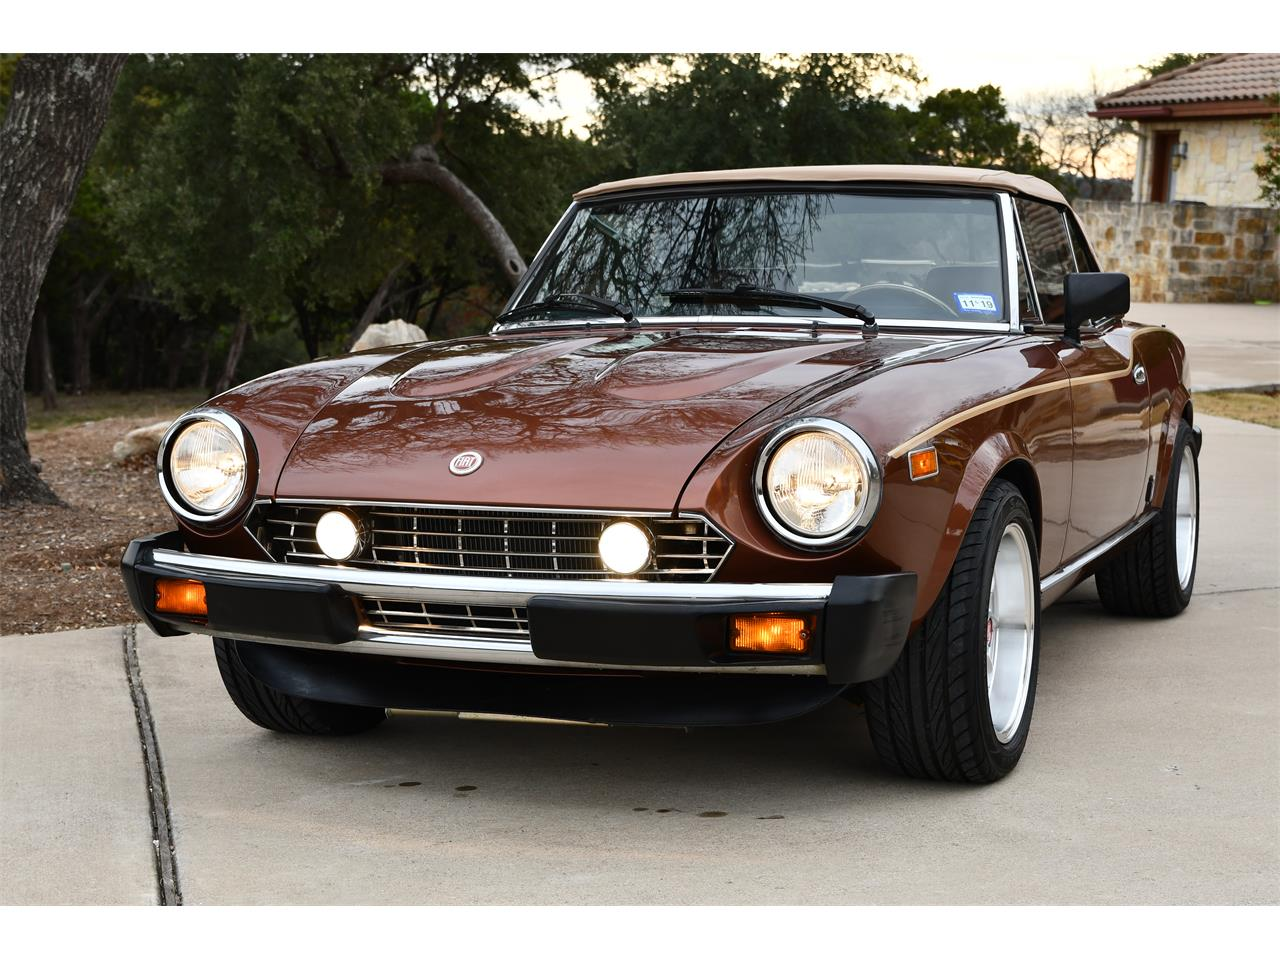 1982 Fiat Spider for sale in Spicewood, TX – photo 3